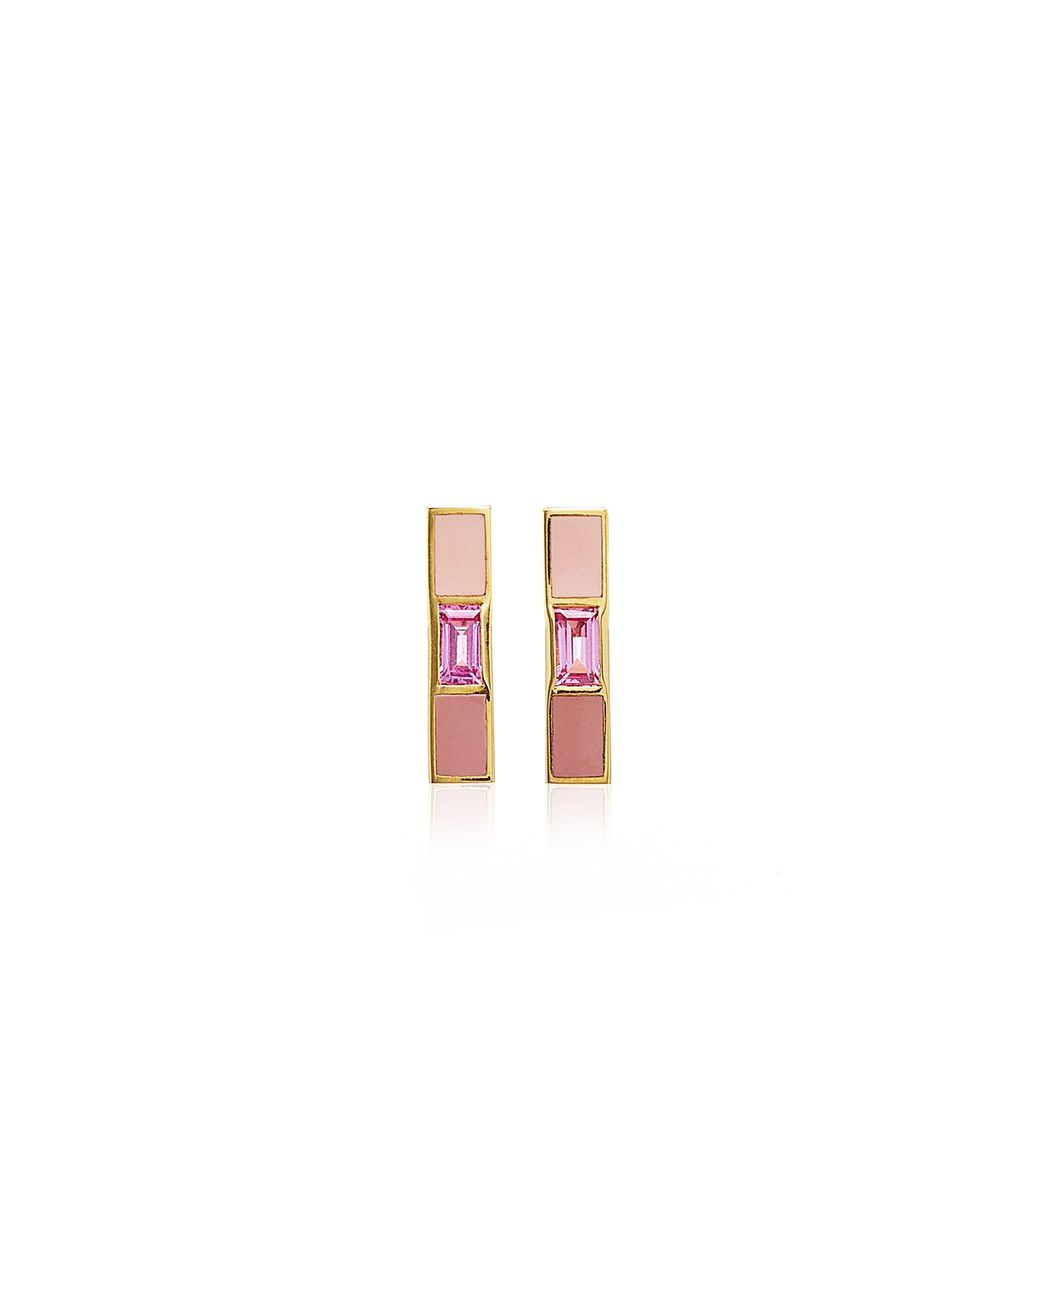 Heart and Butterfly Girls Dangle Earrings Ivy and Max Gold Finish Pink Purple and Blue Enamel Flower